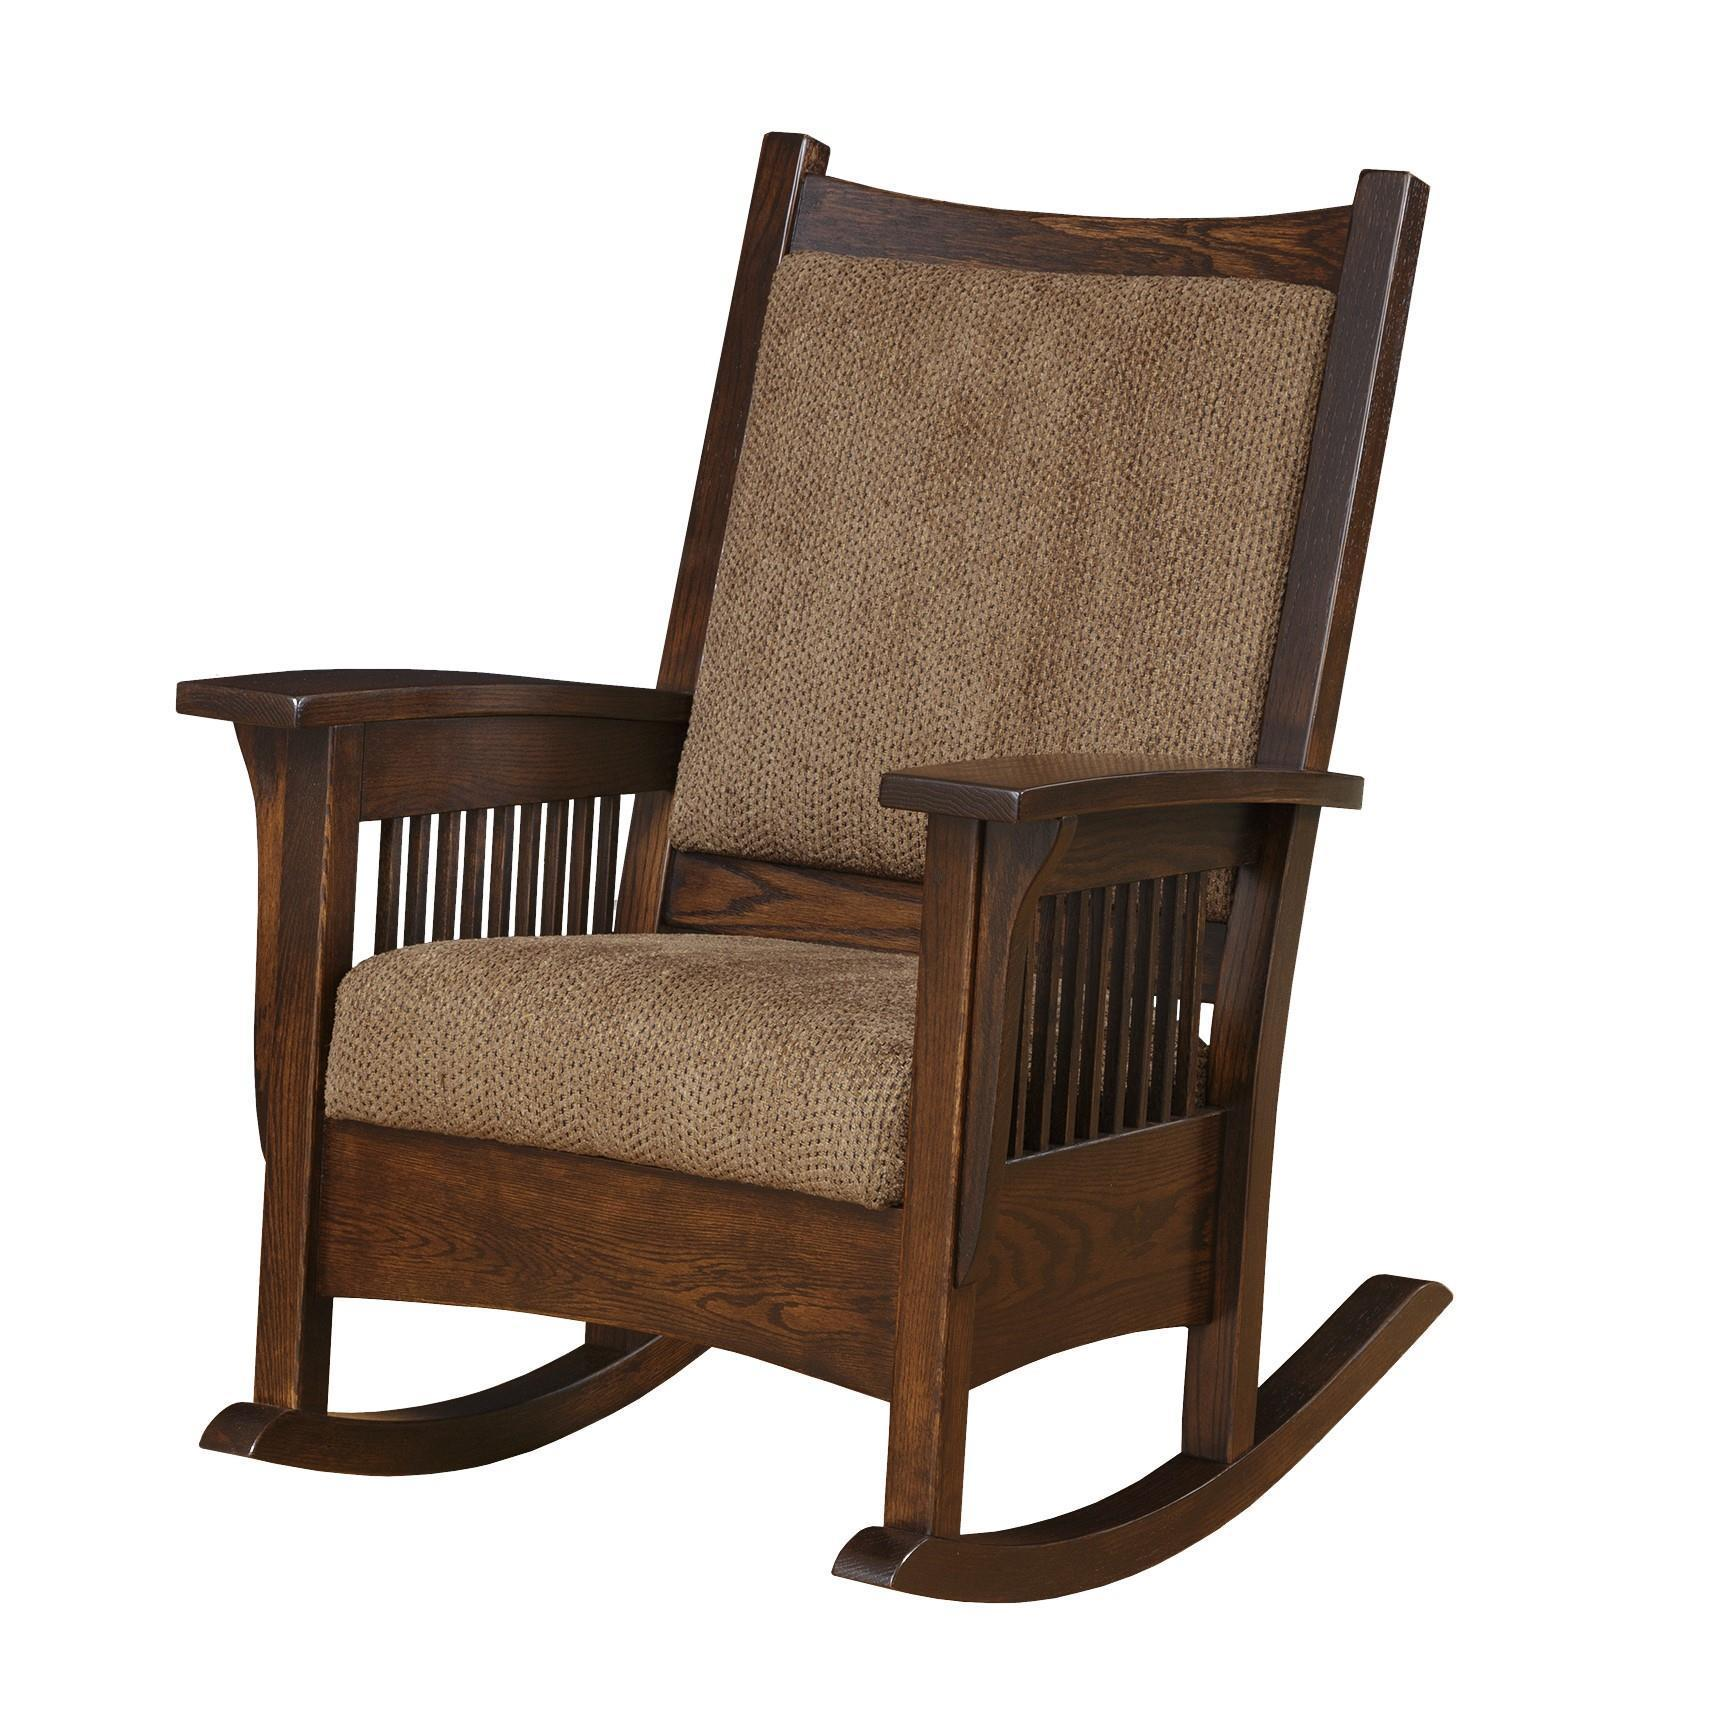 Wondrous Amish Luxury Mission Rocking Chair Cjindustries Chair Design For Home Cjindustriesco